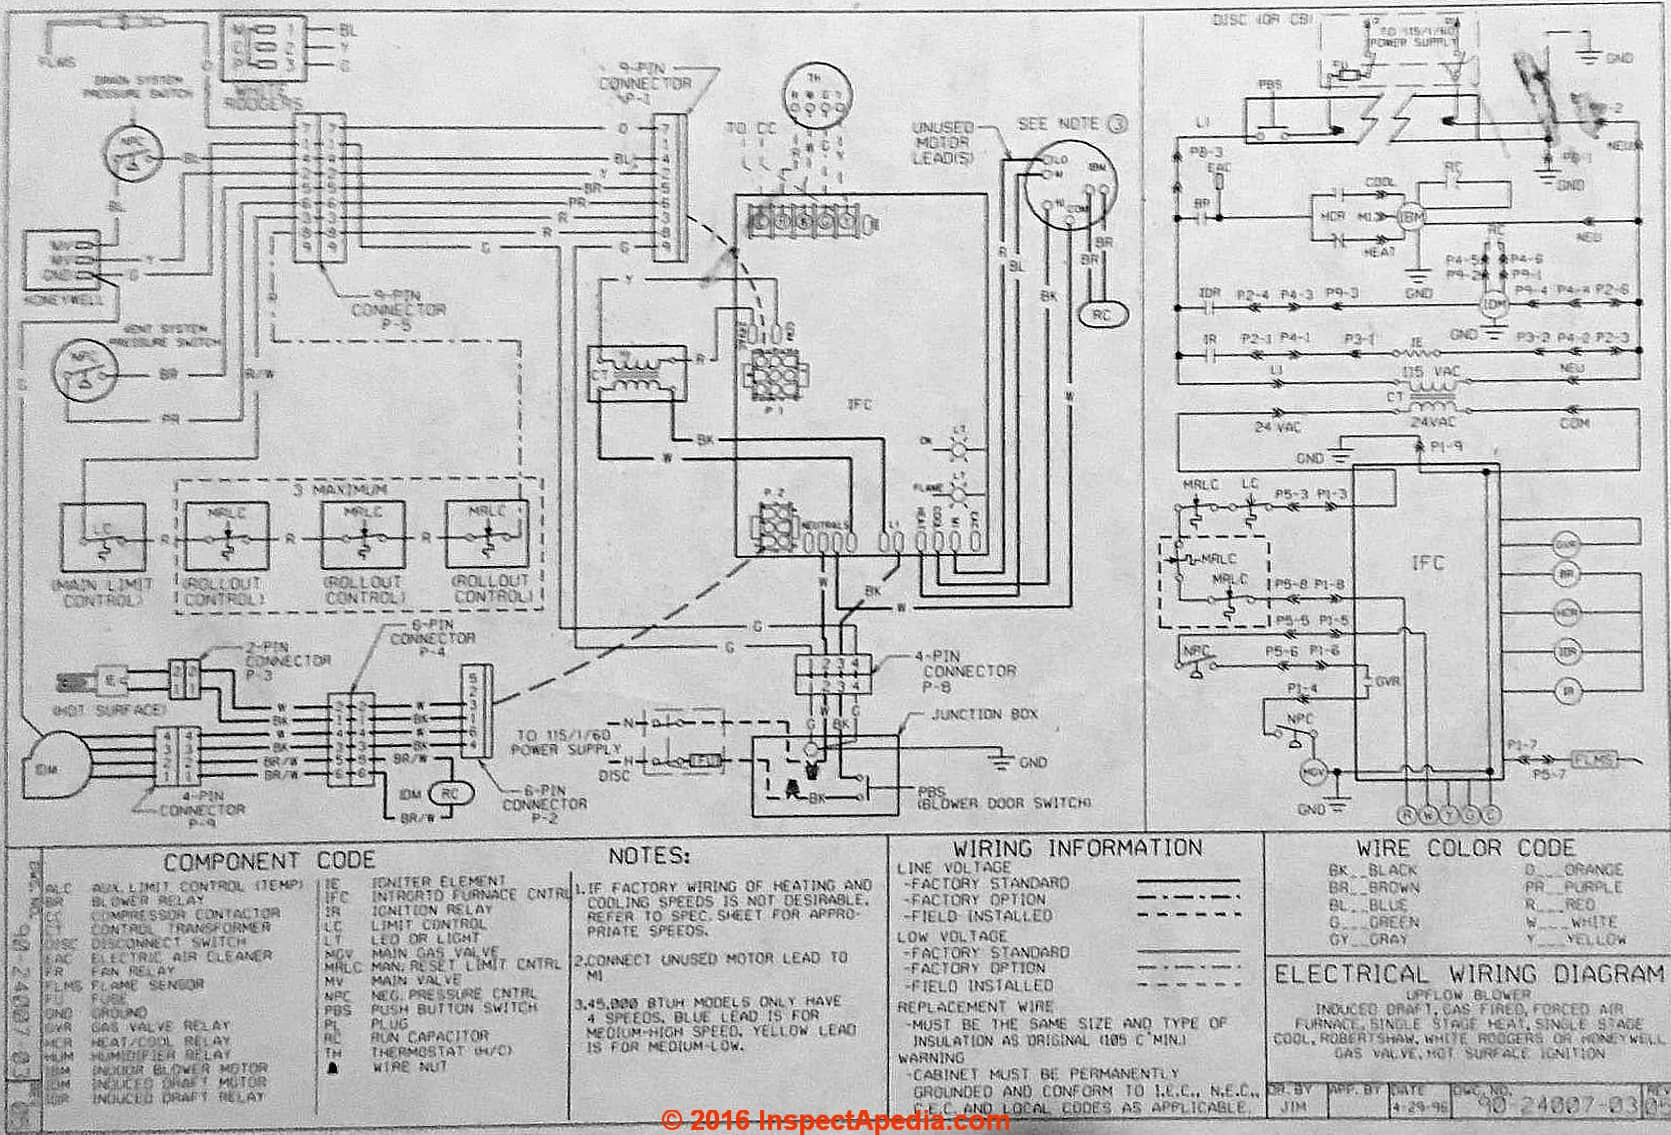 air conditioner heat pump faqs rheem ahu wiring diagram typical at com